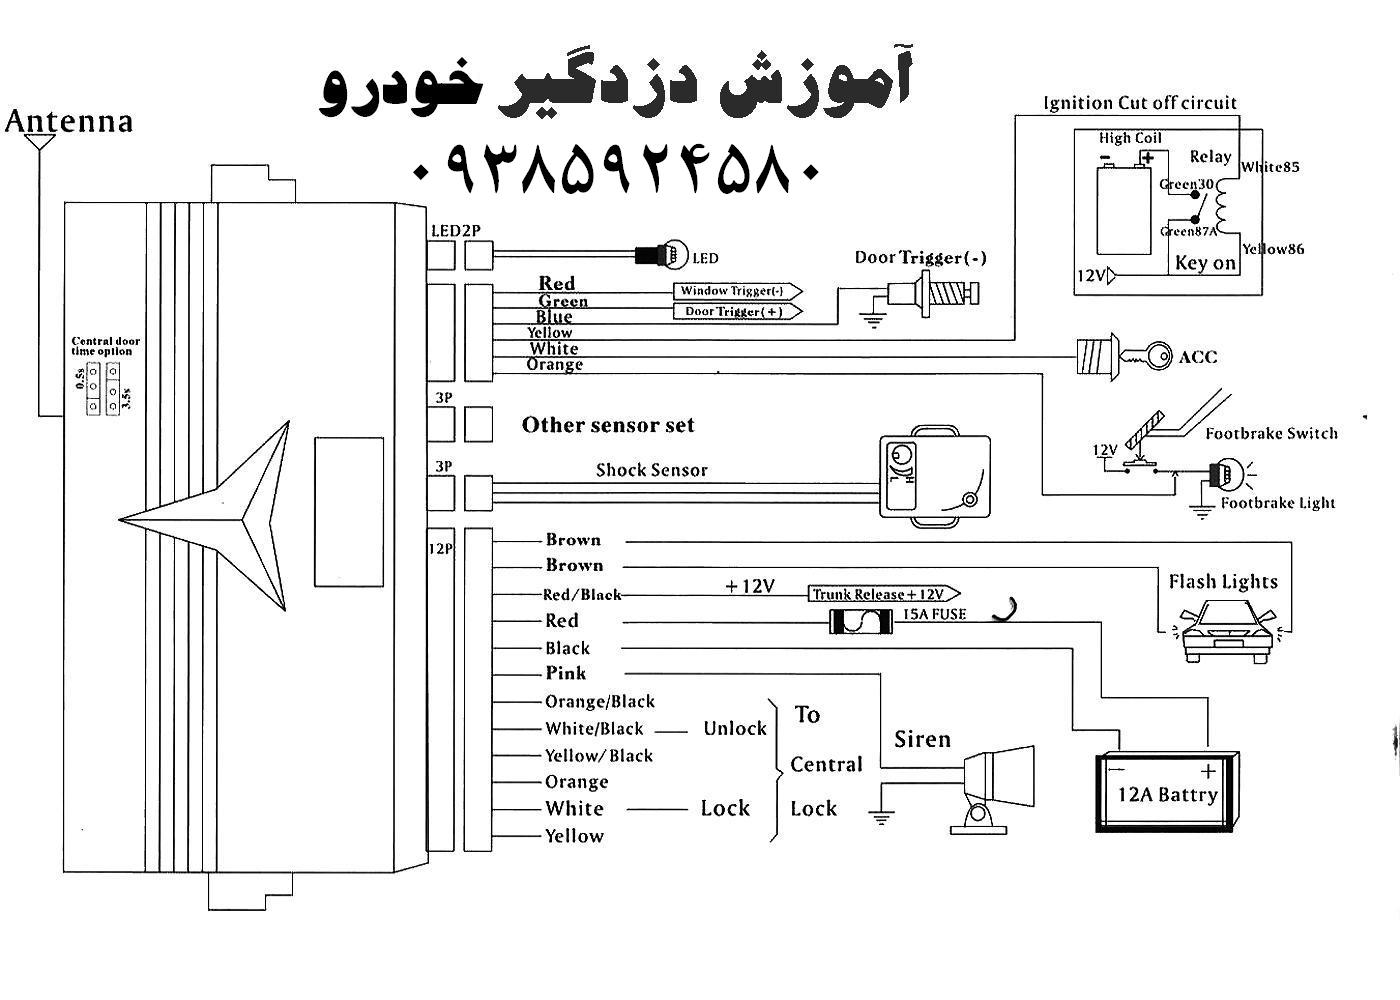 car alarm map (10) wiring diagram for viper car alarm efcaviation com viper car alarm wiring diagram at aneh.co